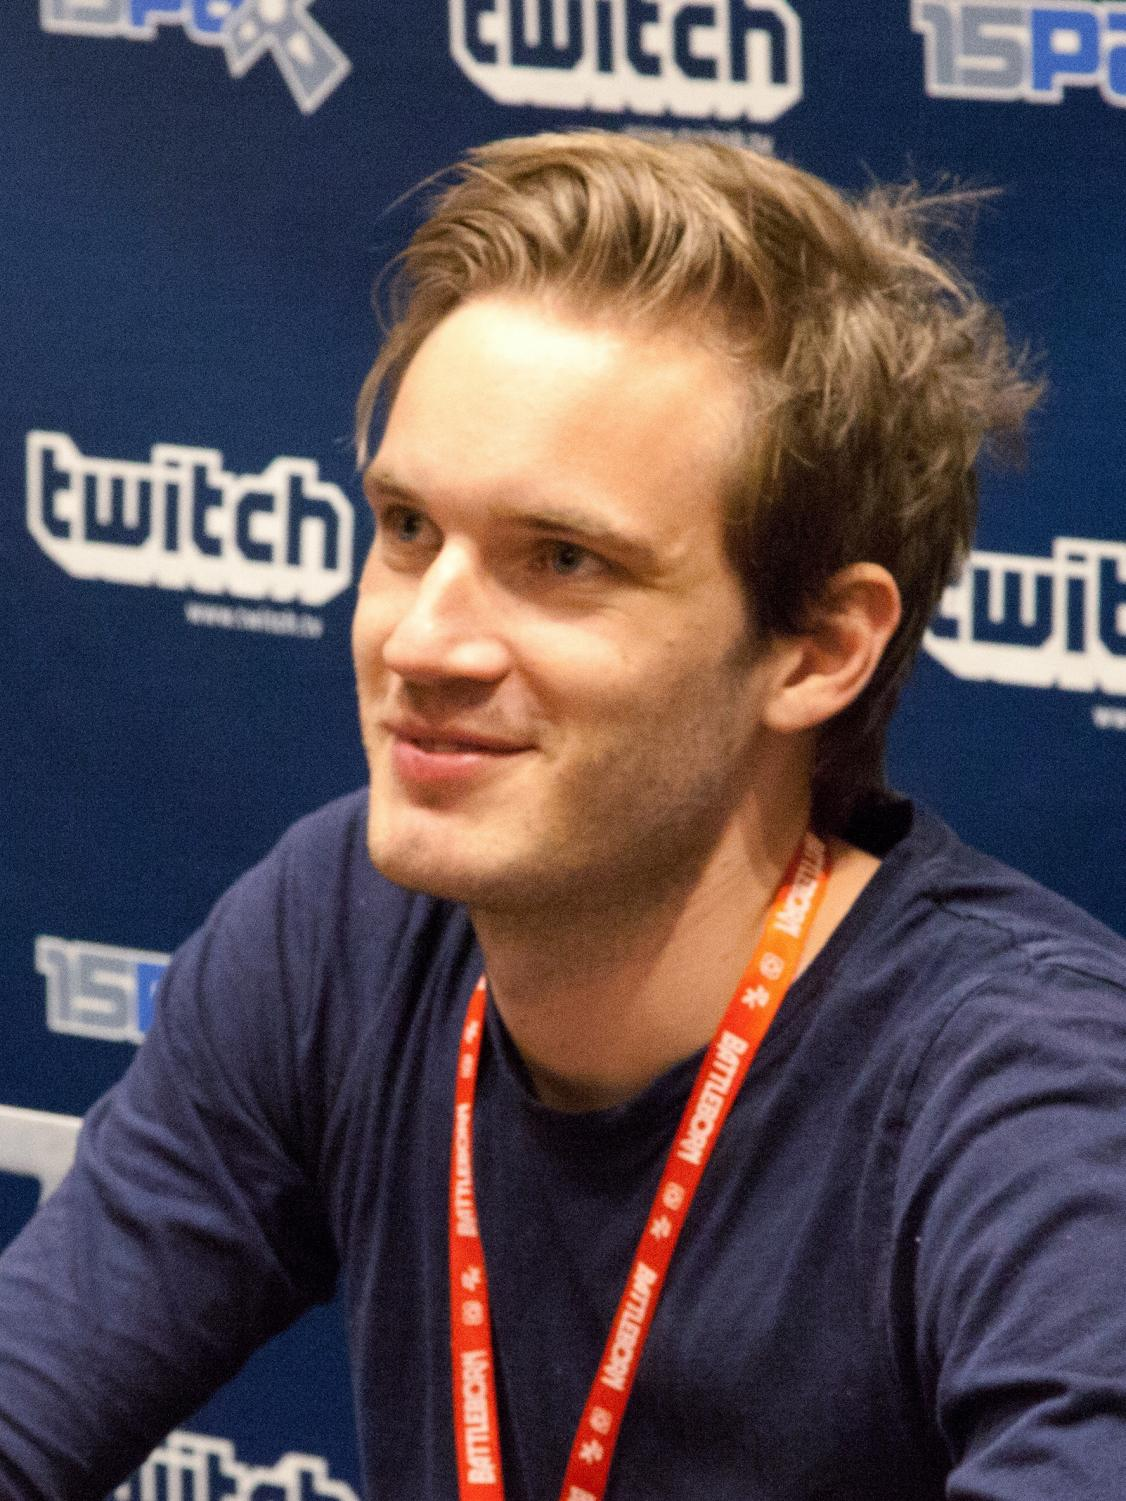 Credits to https://commons.m.wikimedia.org/wiki/File:PewDiePie_at_PAX_2015_crop.jpg